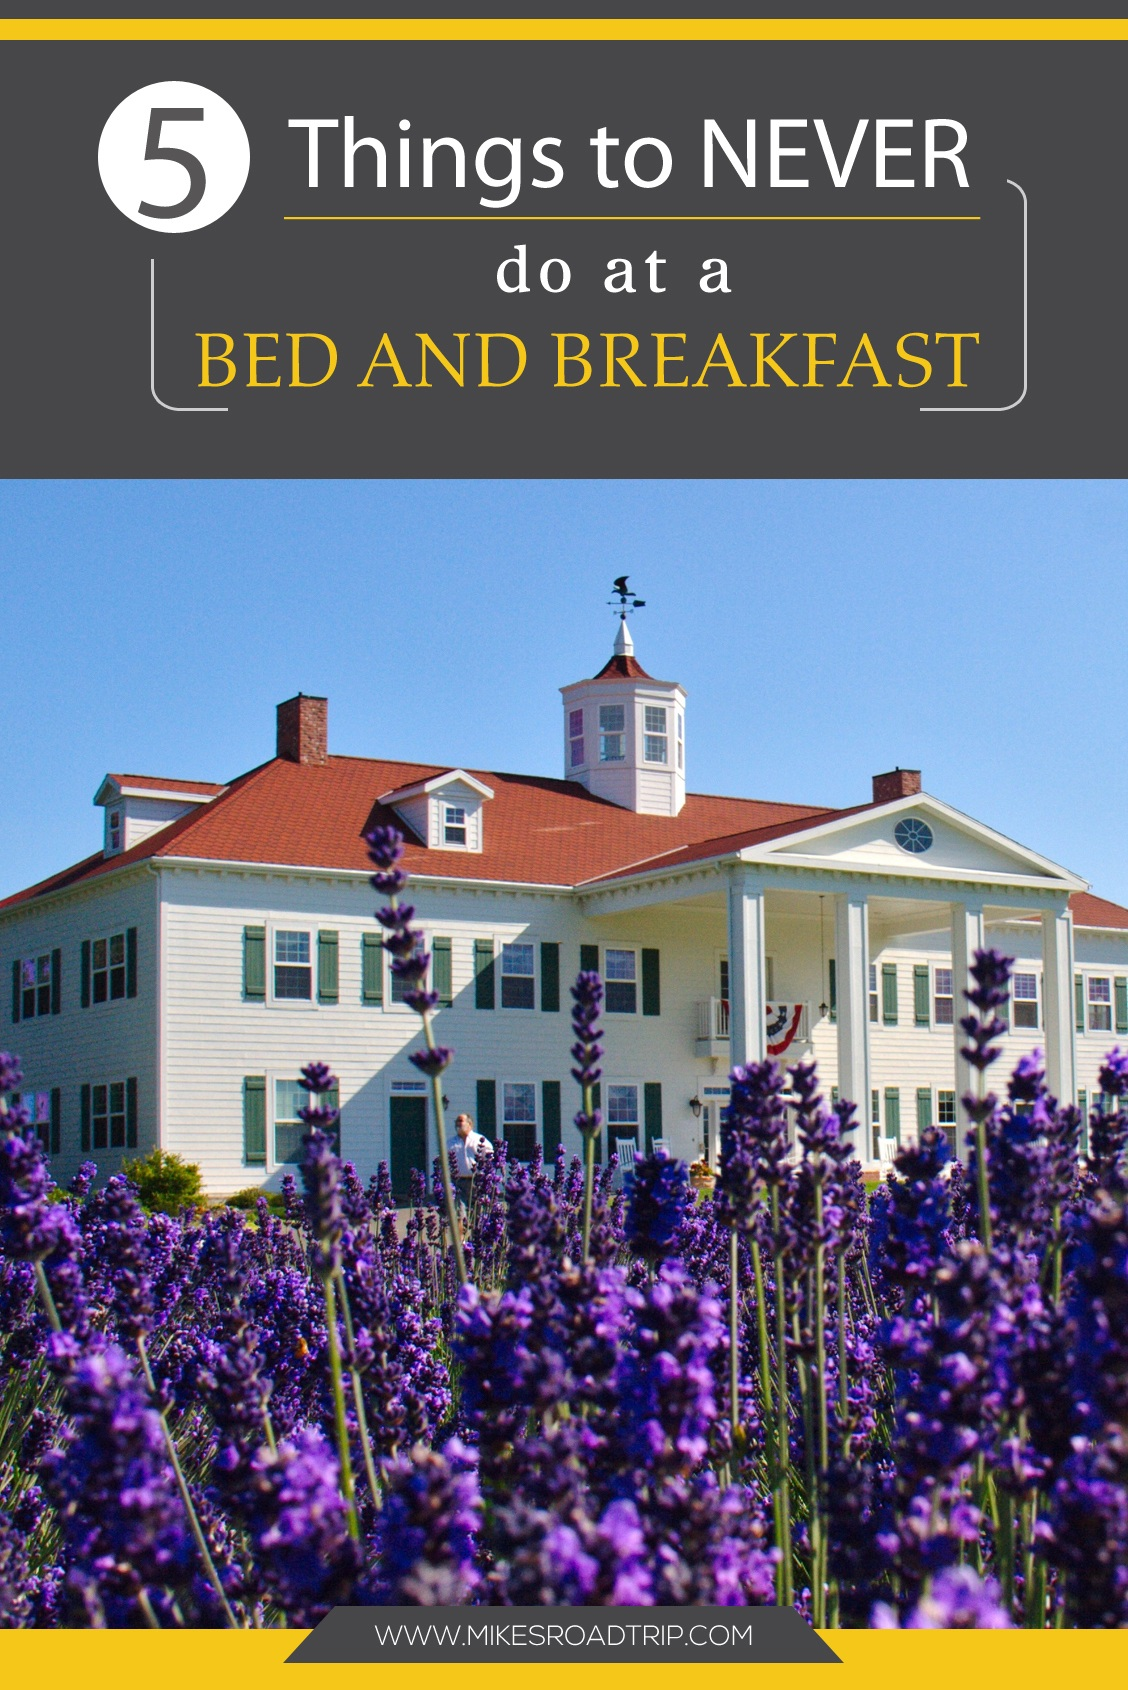 5 things never to do at a bed and breakfast by MikesRoadTrip.com